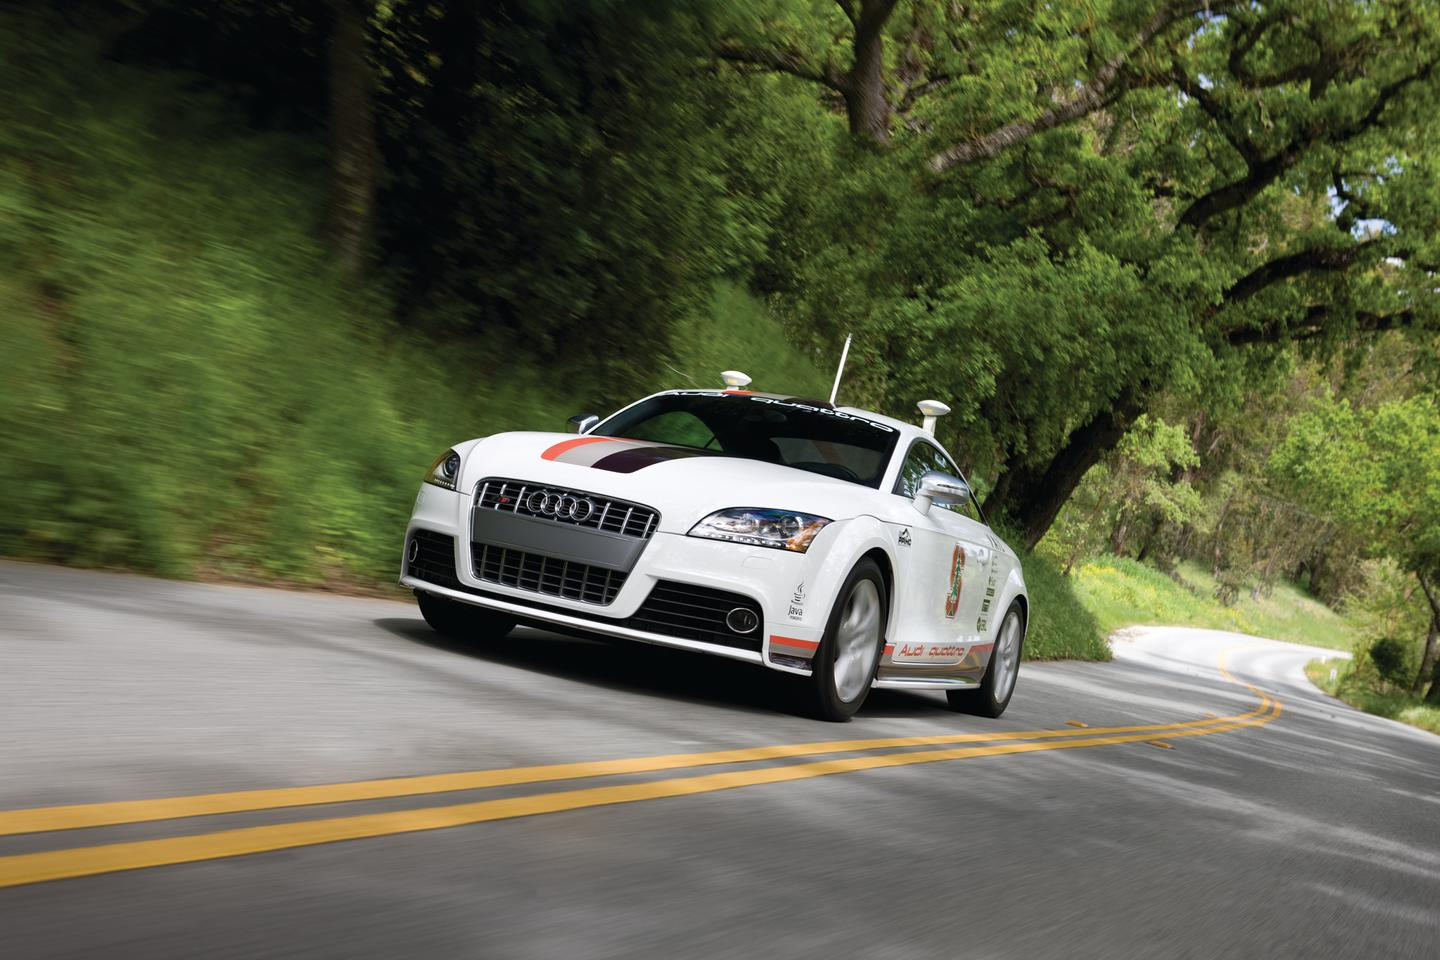 Audi's Autonomous TTS Pikes Peak research car could soon be sporting exclusive red license plates that allow it to drive on Nevada's public roads